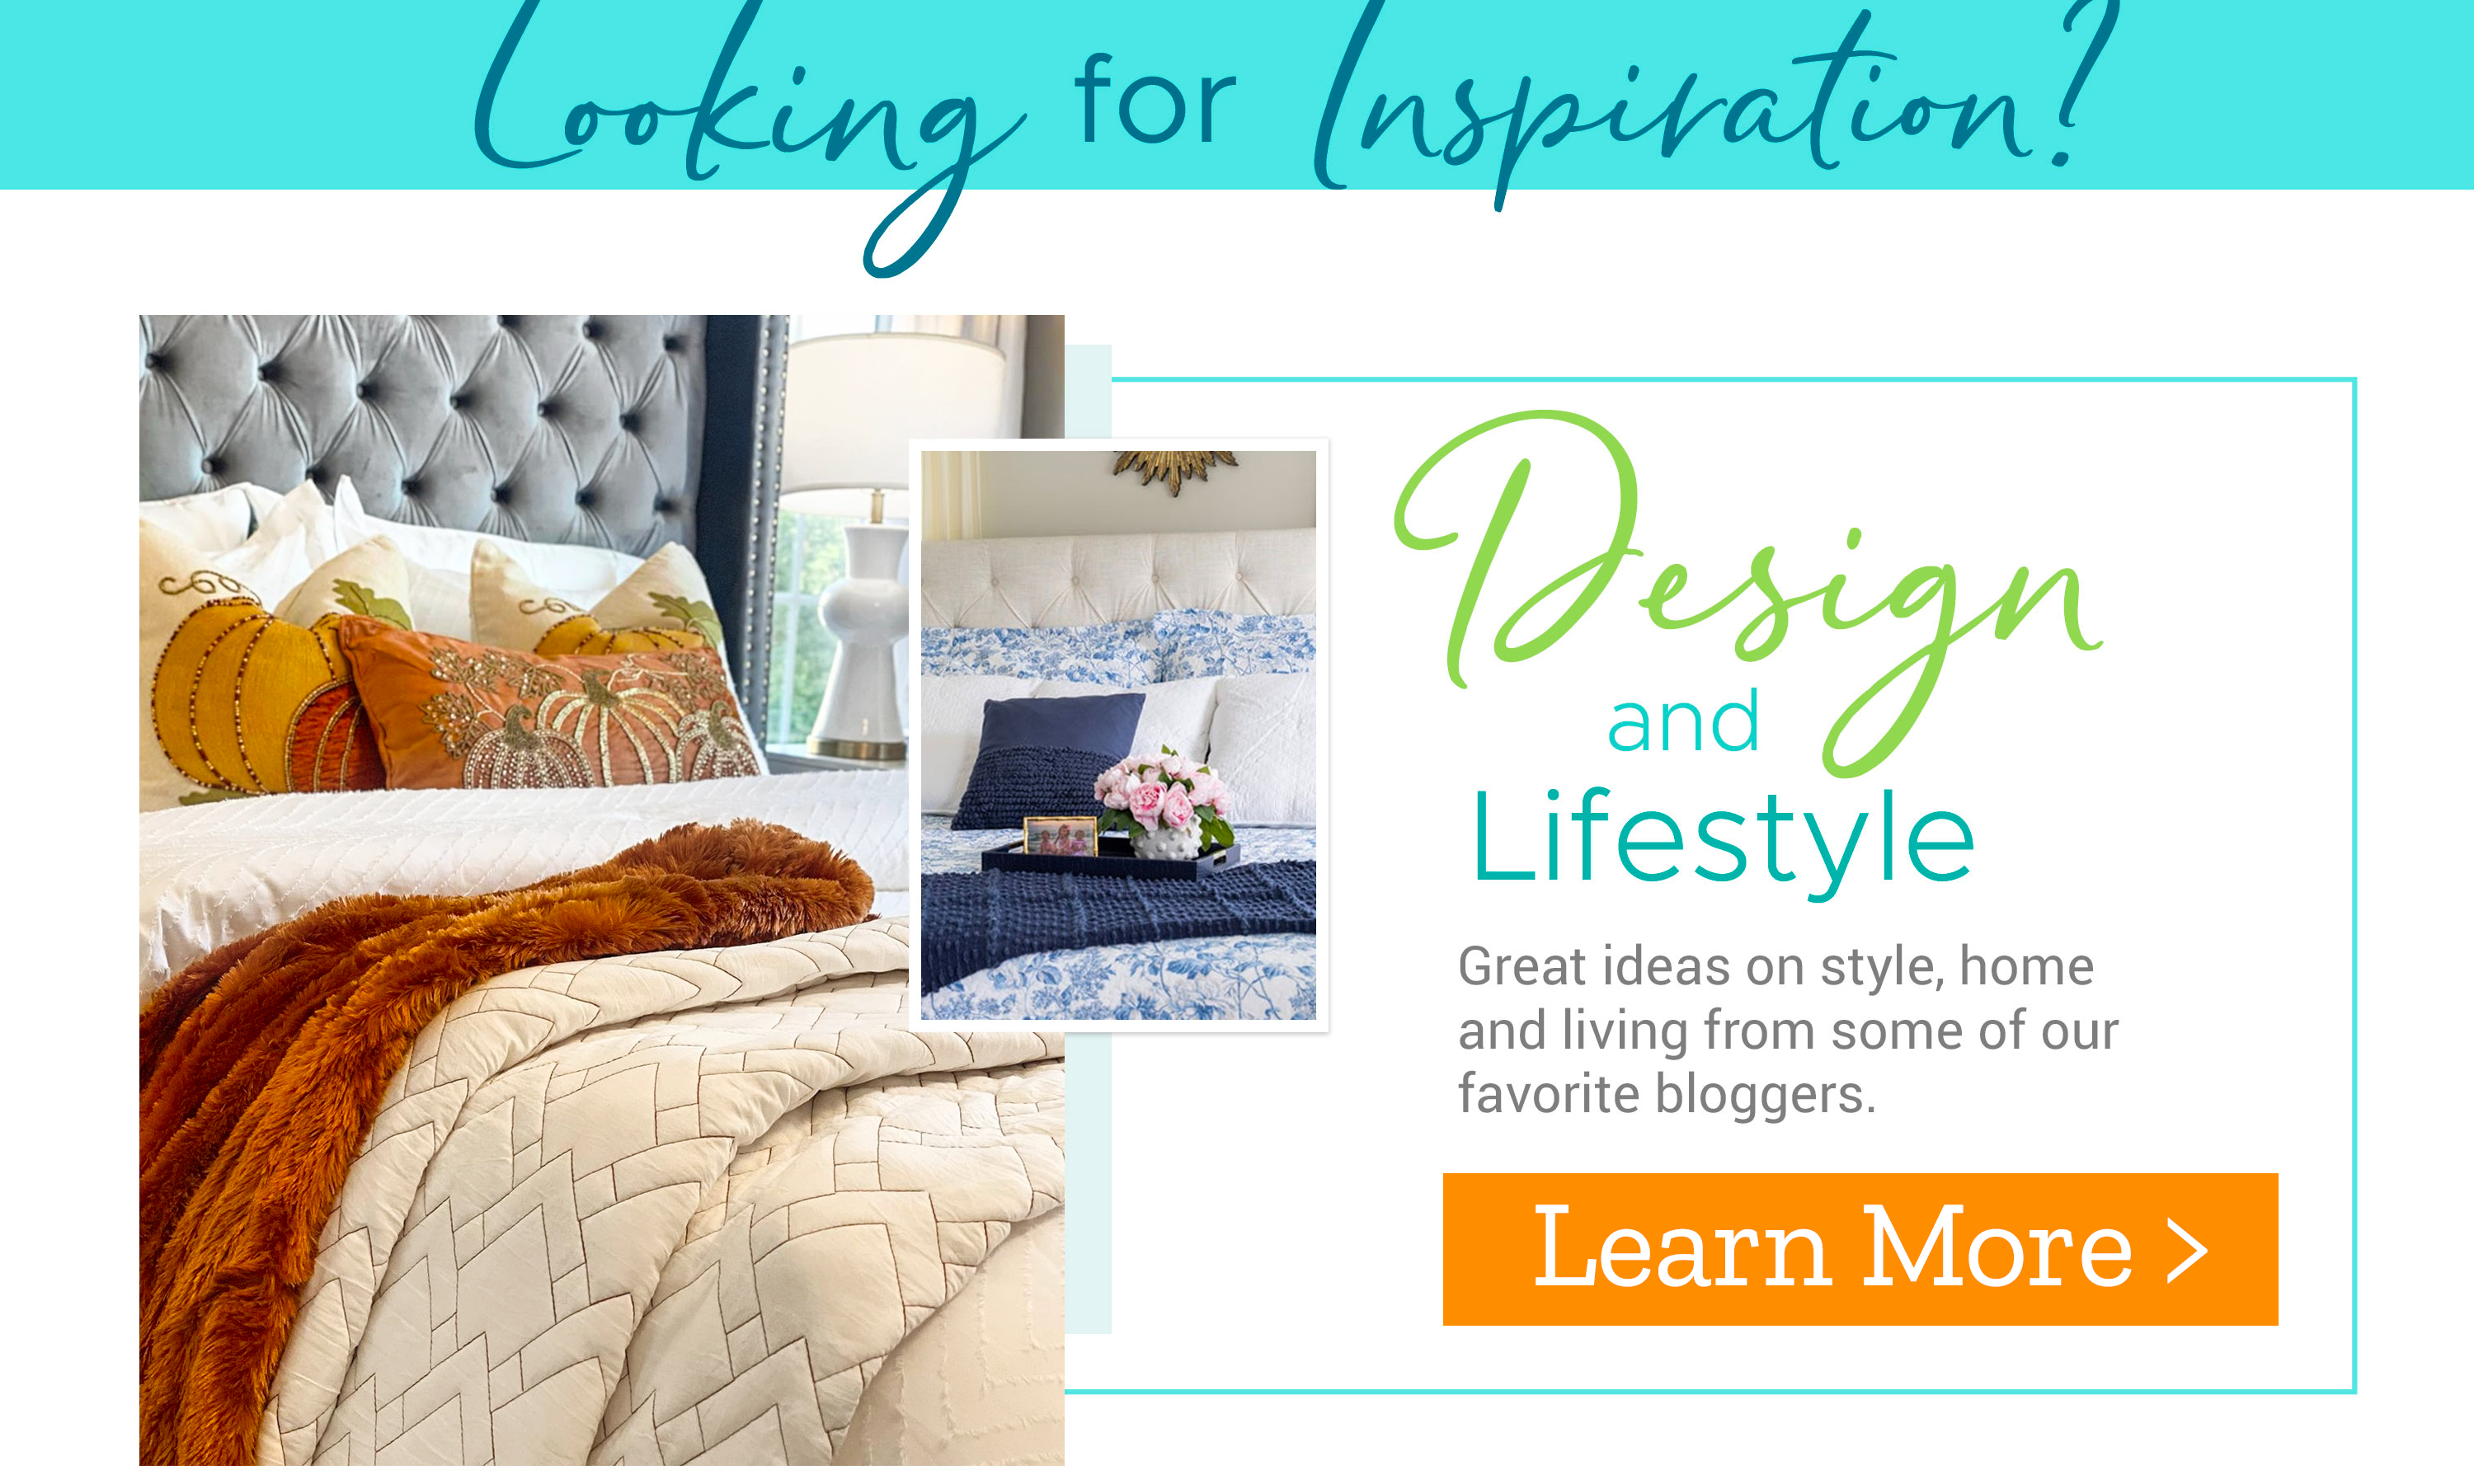 Design & Lifestyle - Learn More >